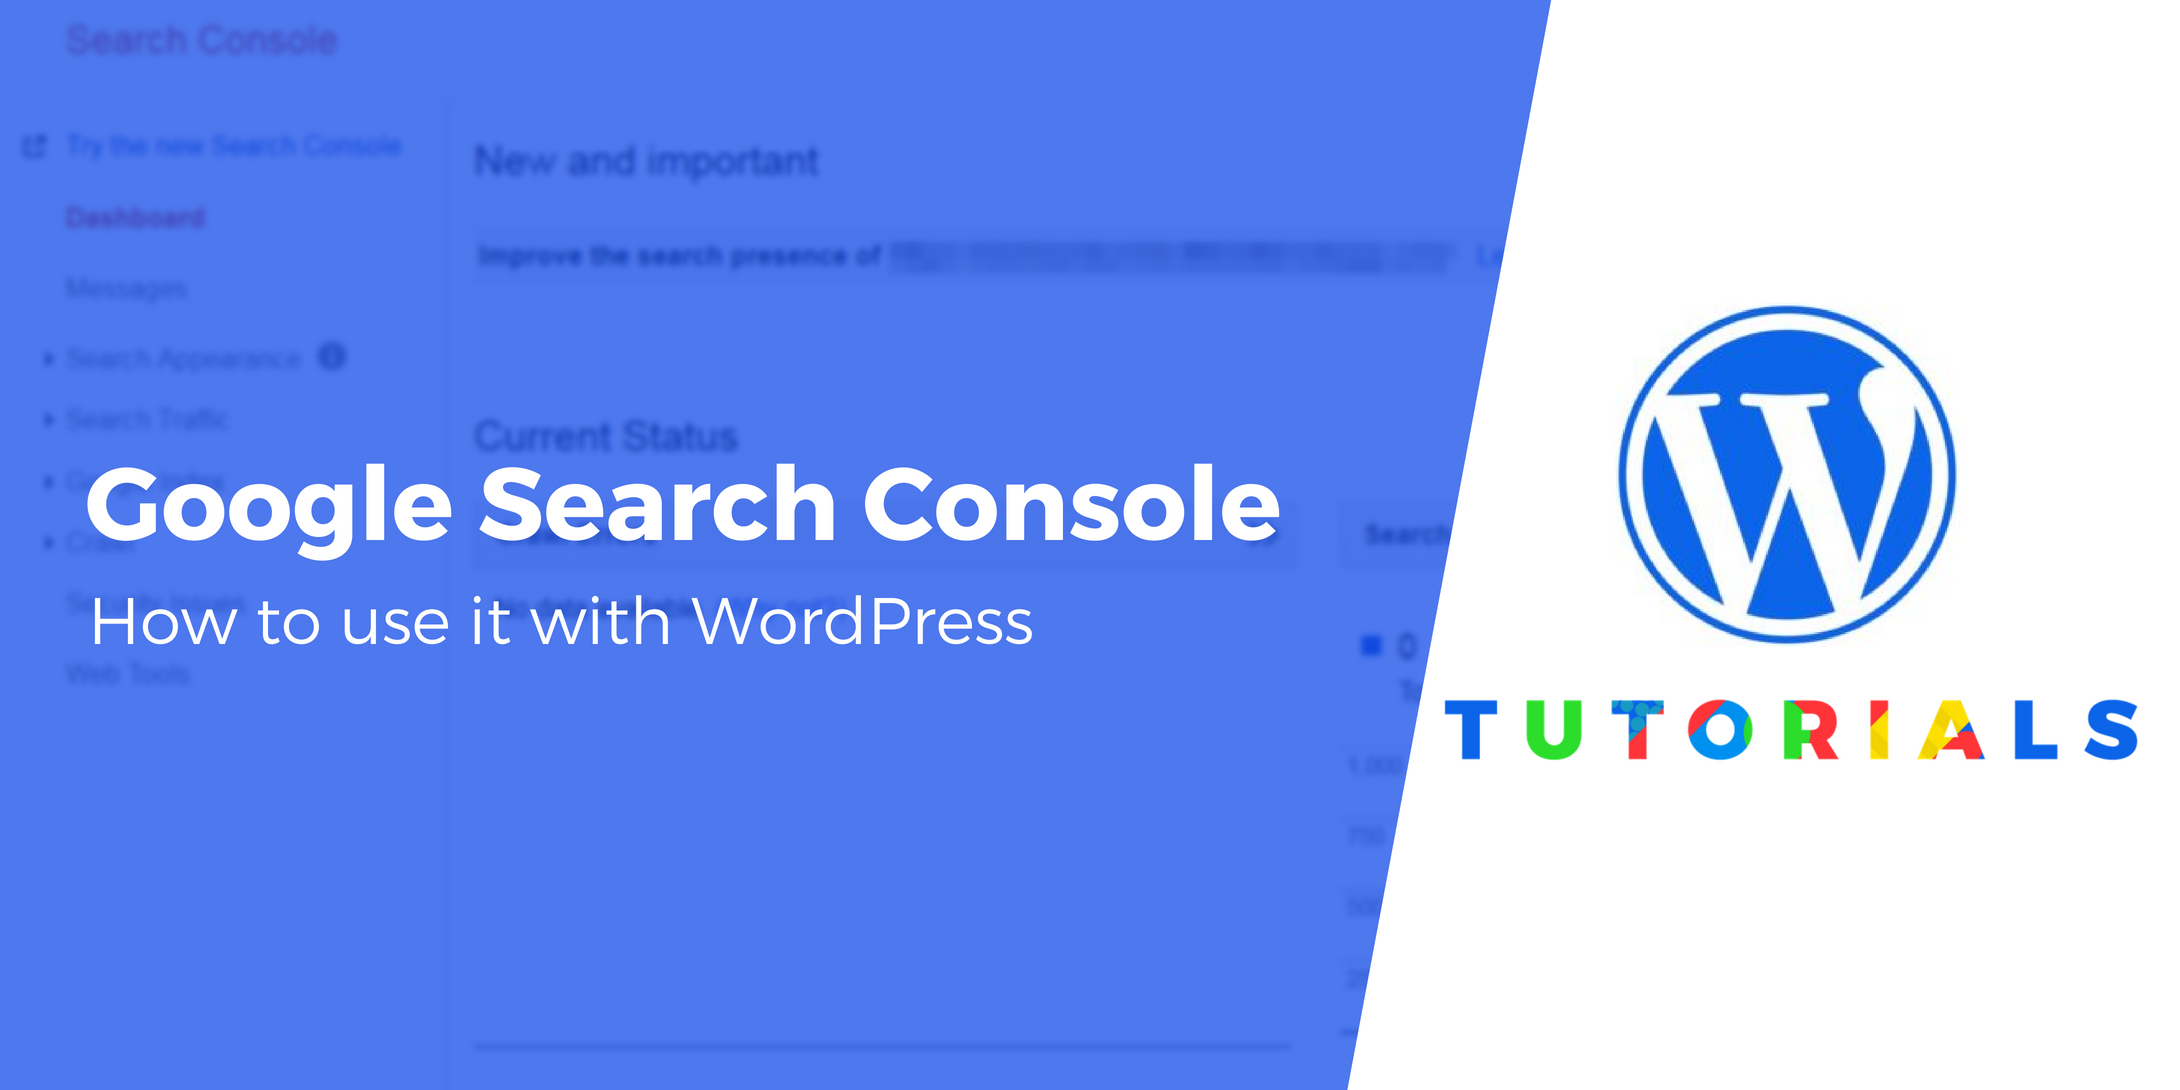 Google Search Console + WordPress